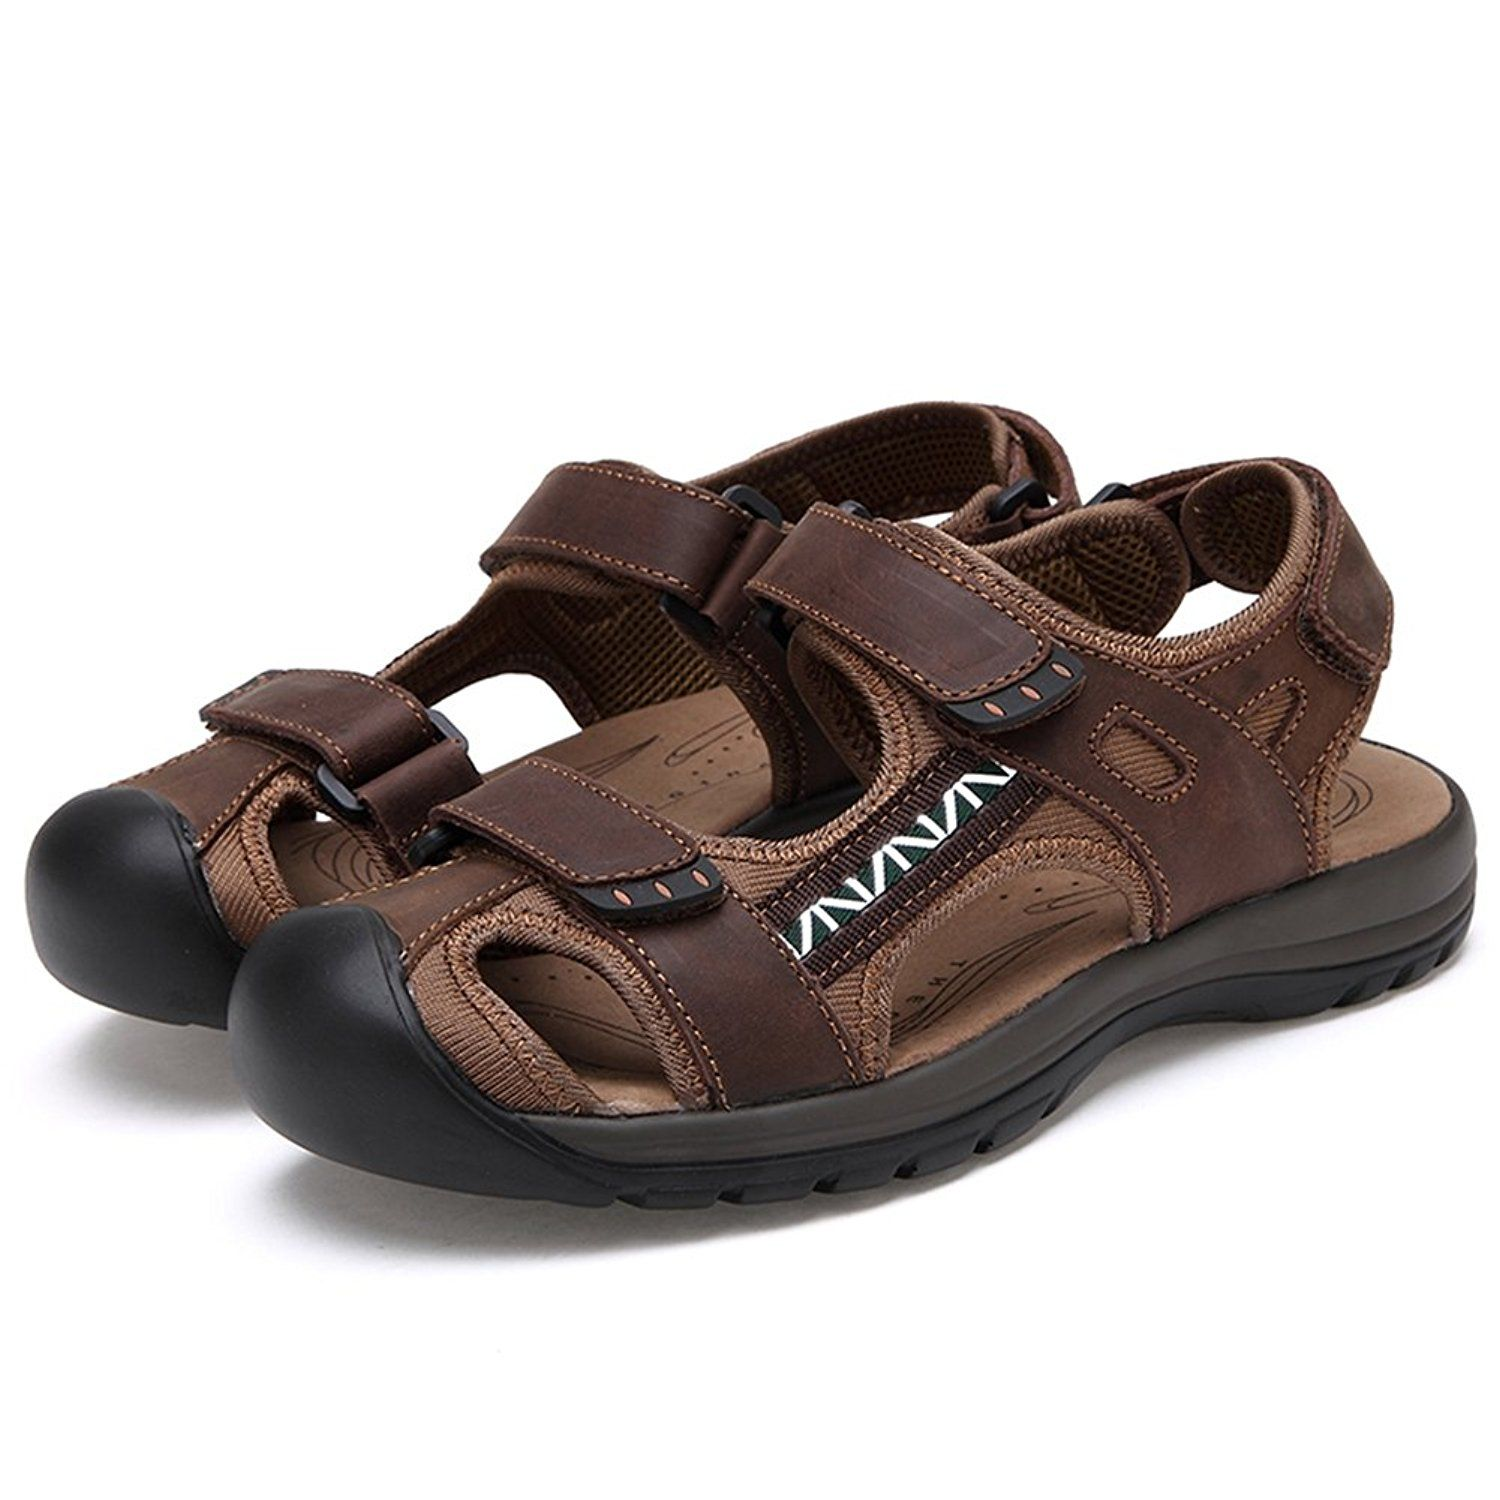 9f96860dfb452 Agowoo Womens Athletic Beach Hiking Closed Toe Sandals ** Visit the ...